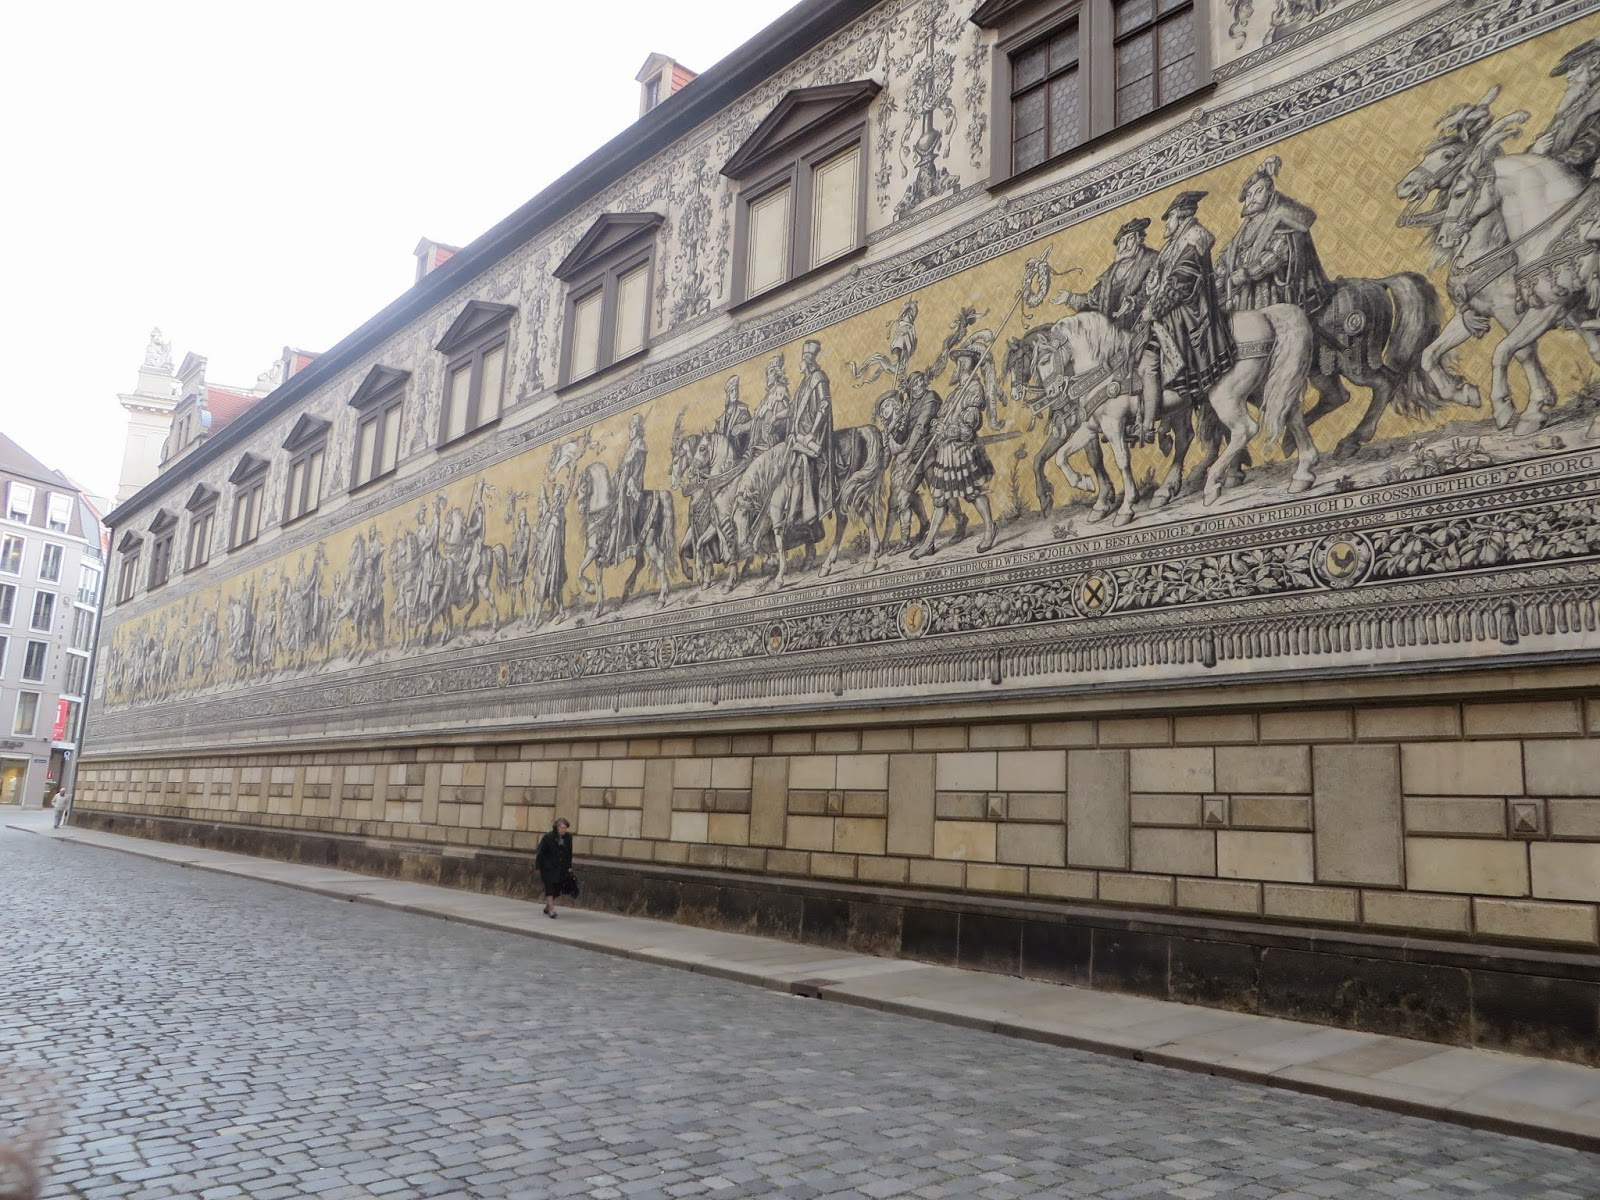 Fürstenzug, Procession of Princes, Tile Mosaic, Dresden, Germany